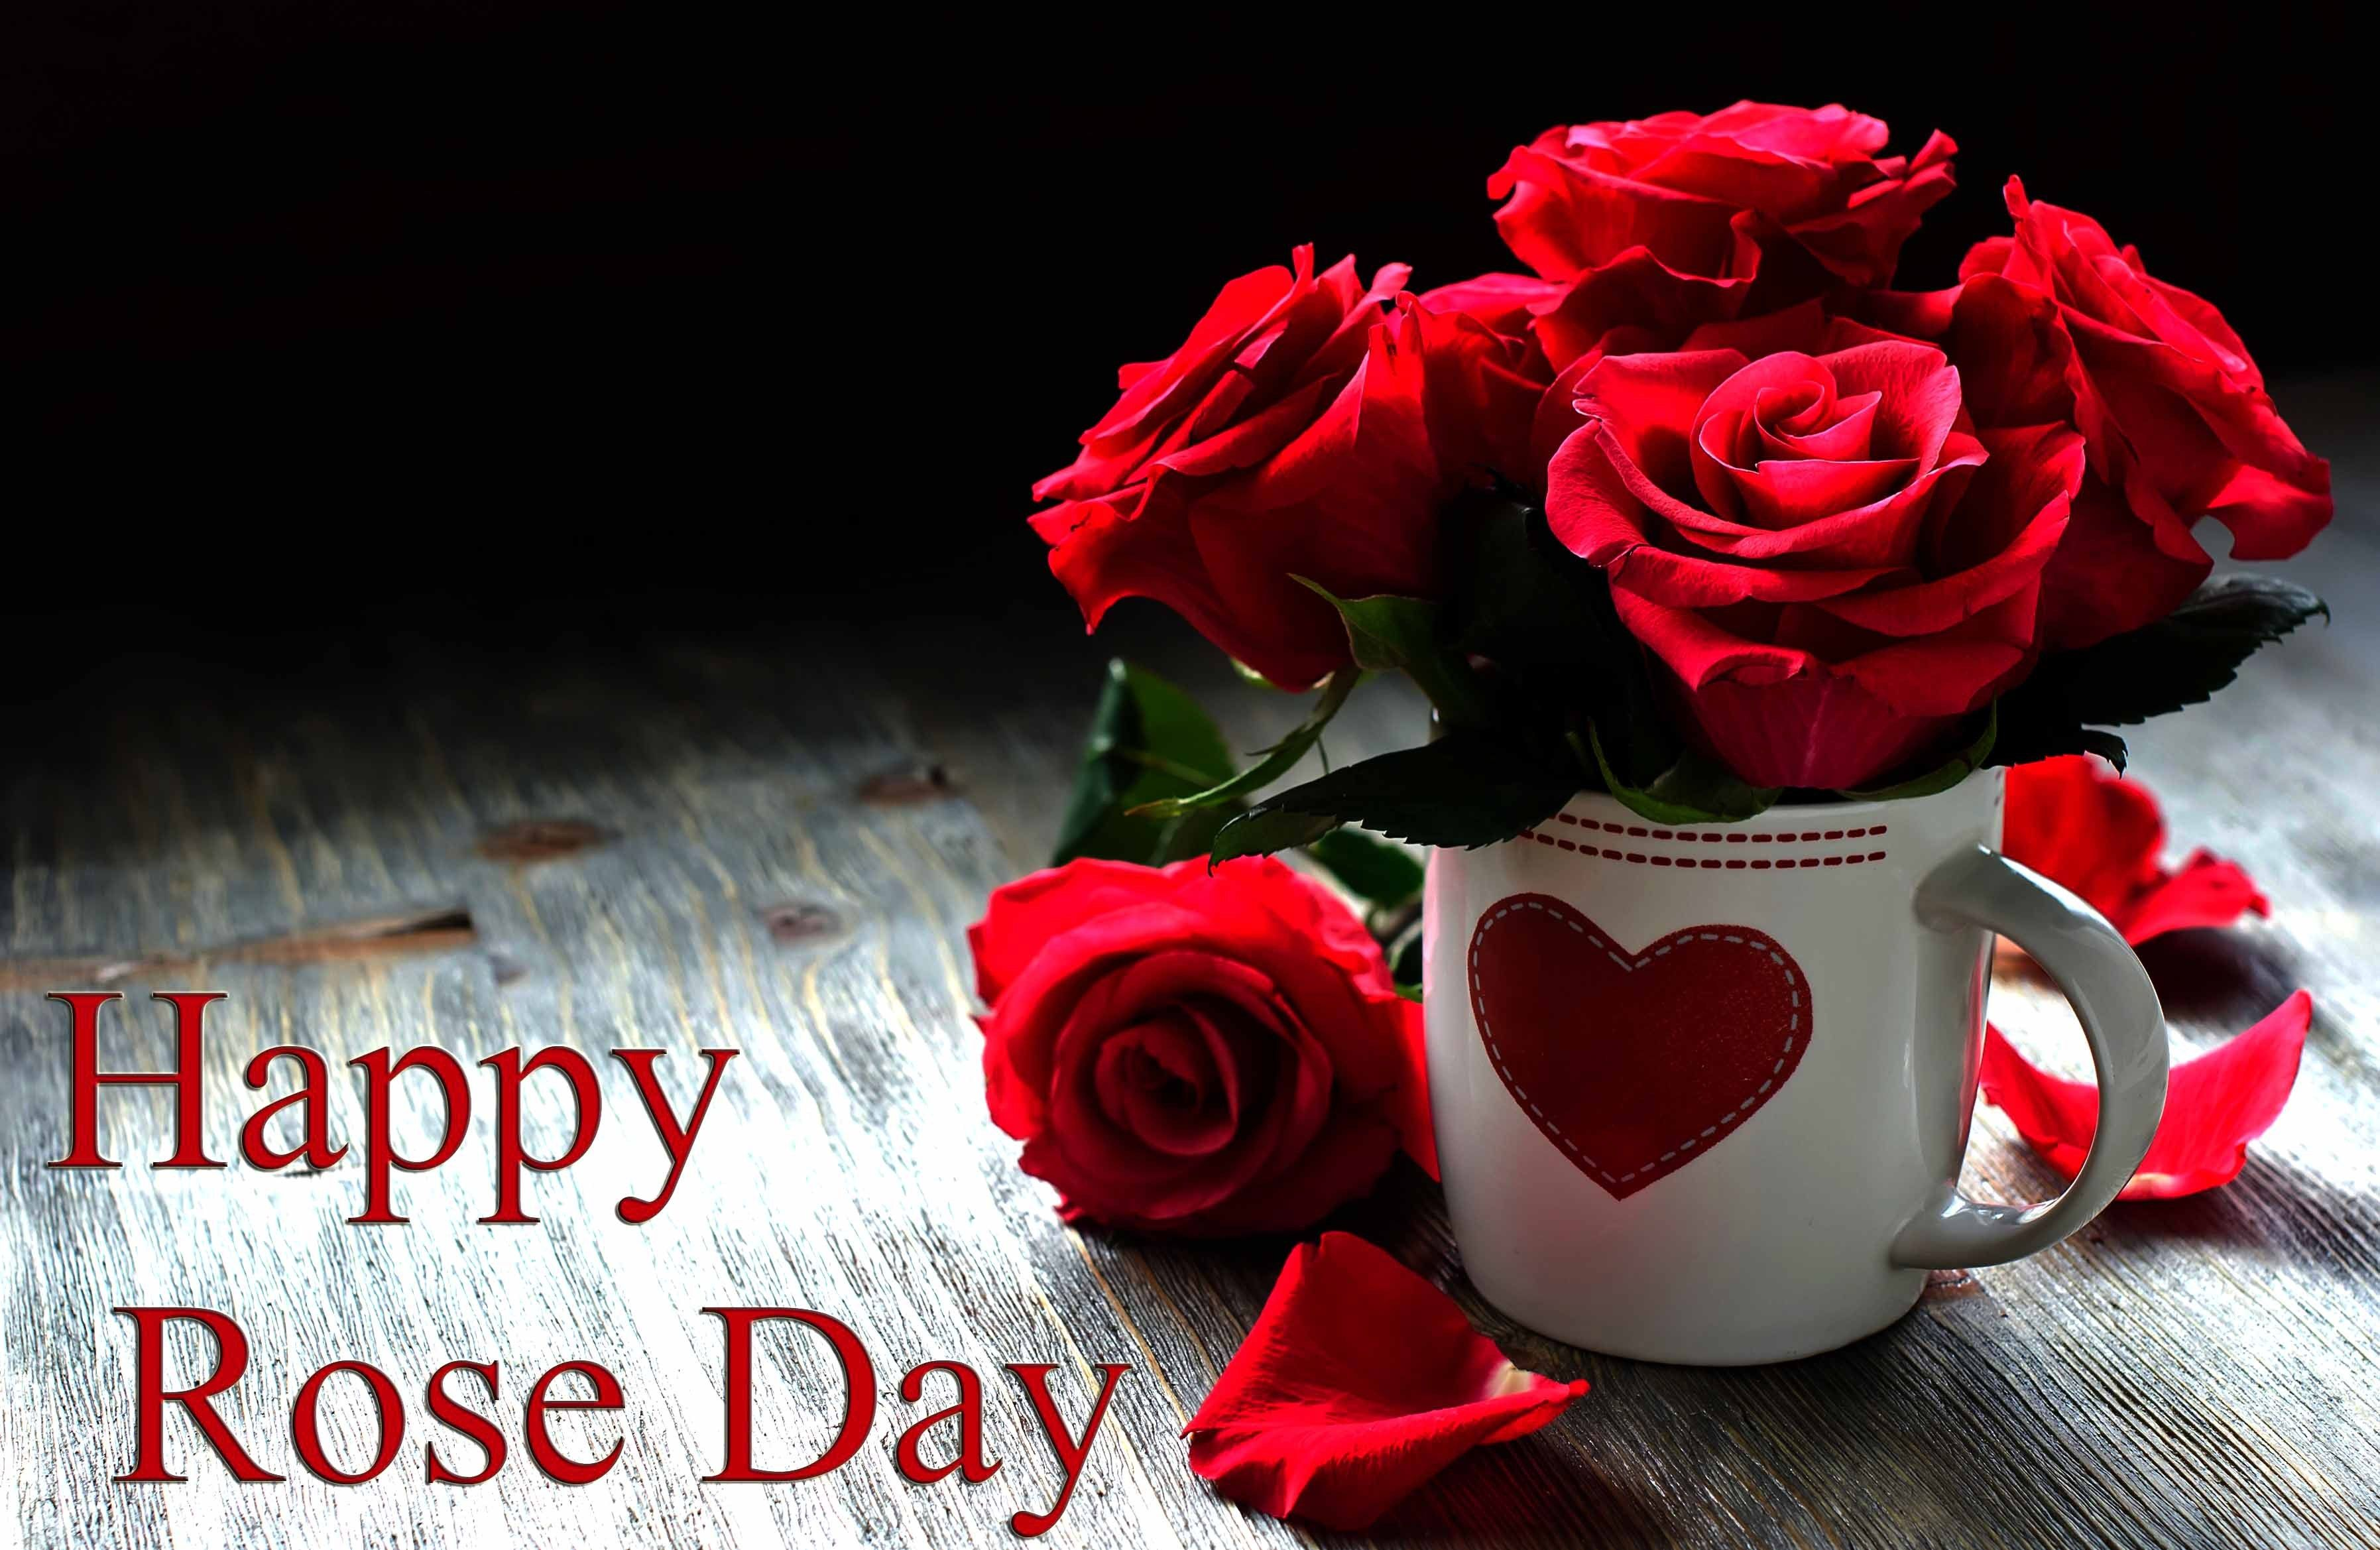 Happy Rose Day Wallpapers Rose Day Wallpaper Happy Rose Day Wallpaper Flower Wallpaper